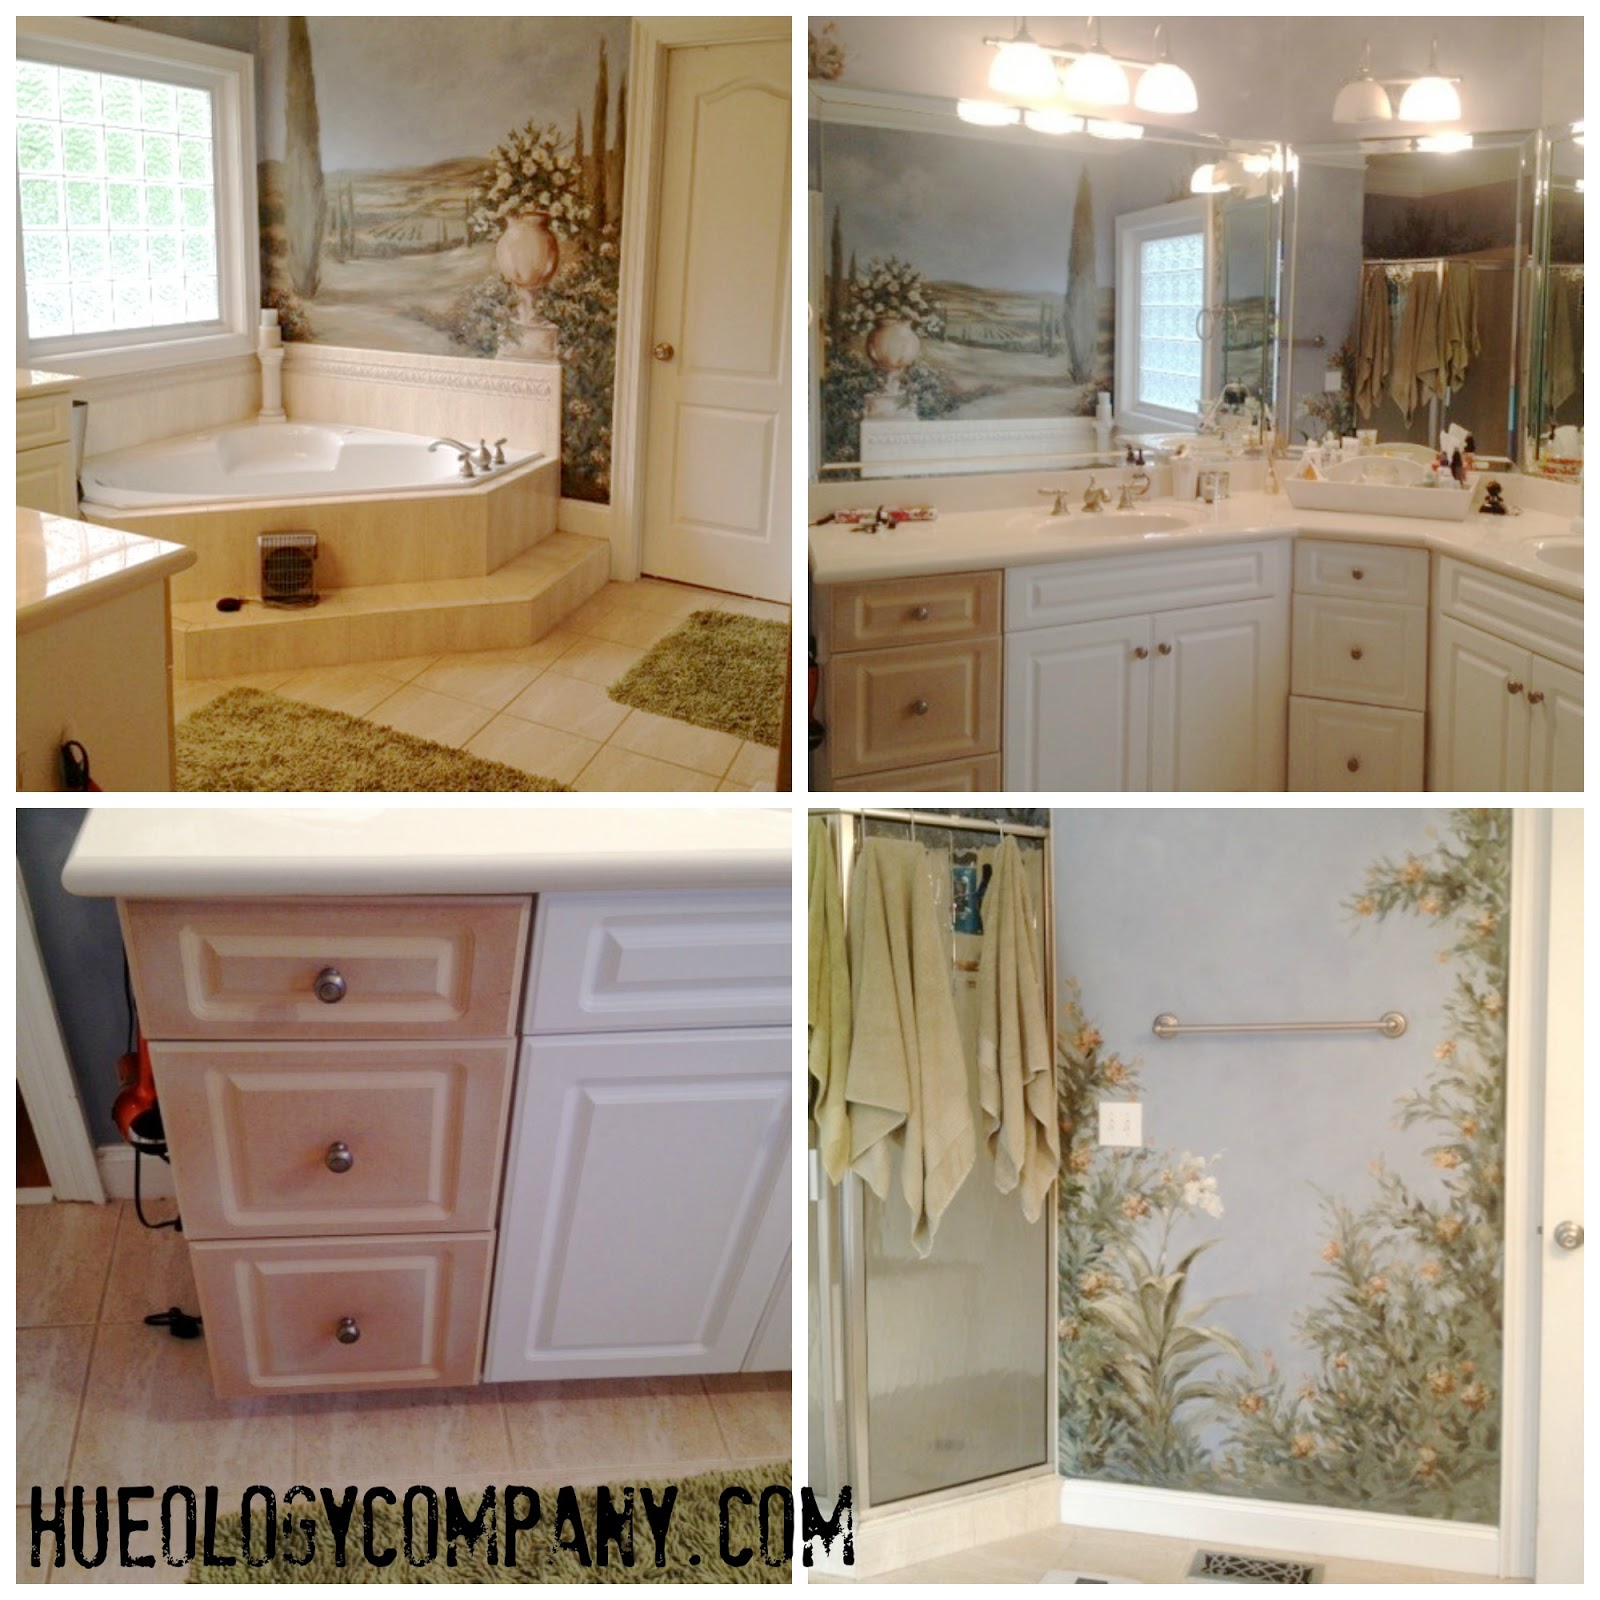 Painting Over Kitchen Cabinets: Painting Bathroom Cabinets